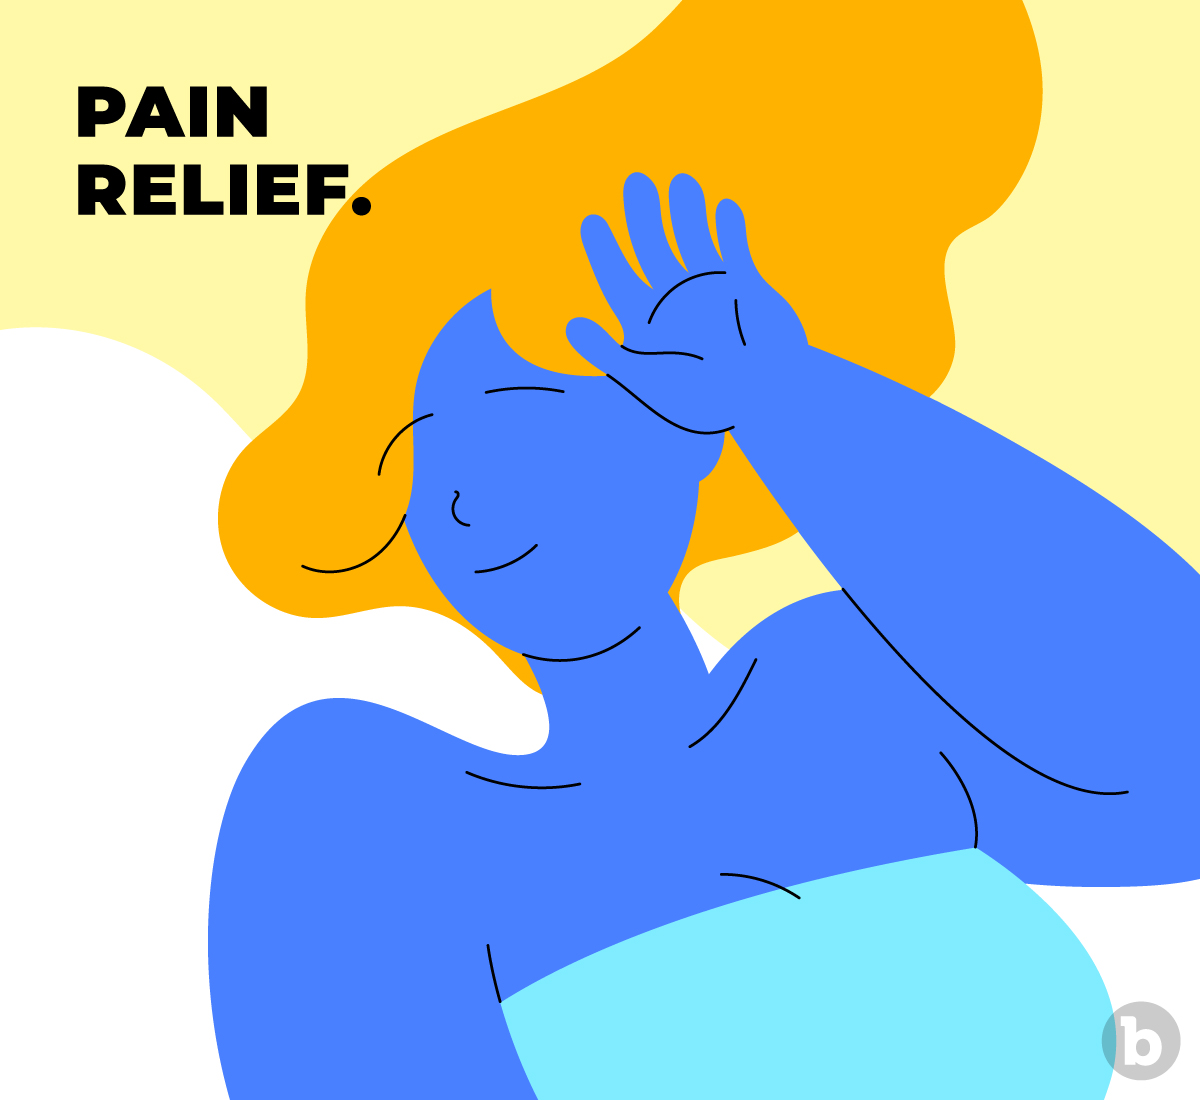 Pain relief is a health benefit of having orgasms